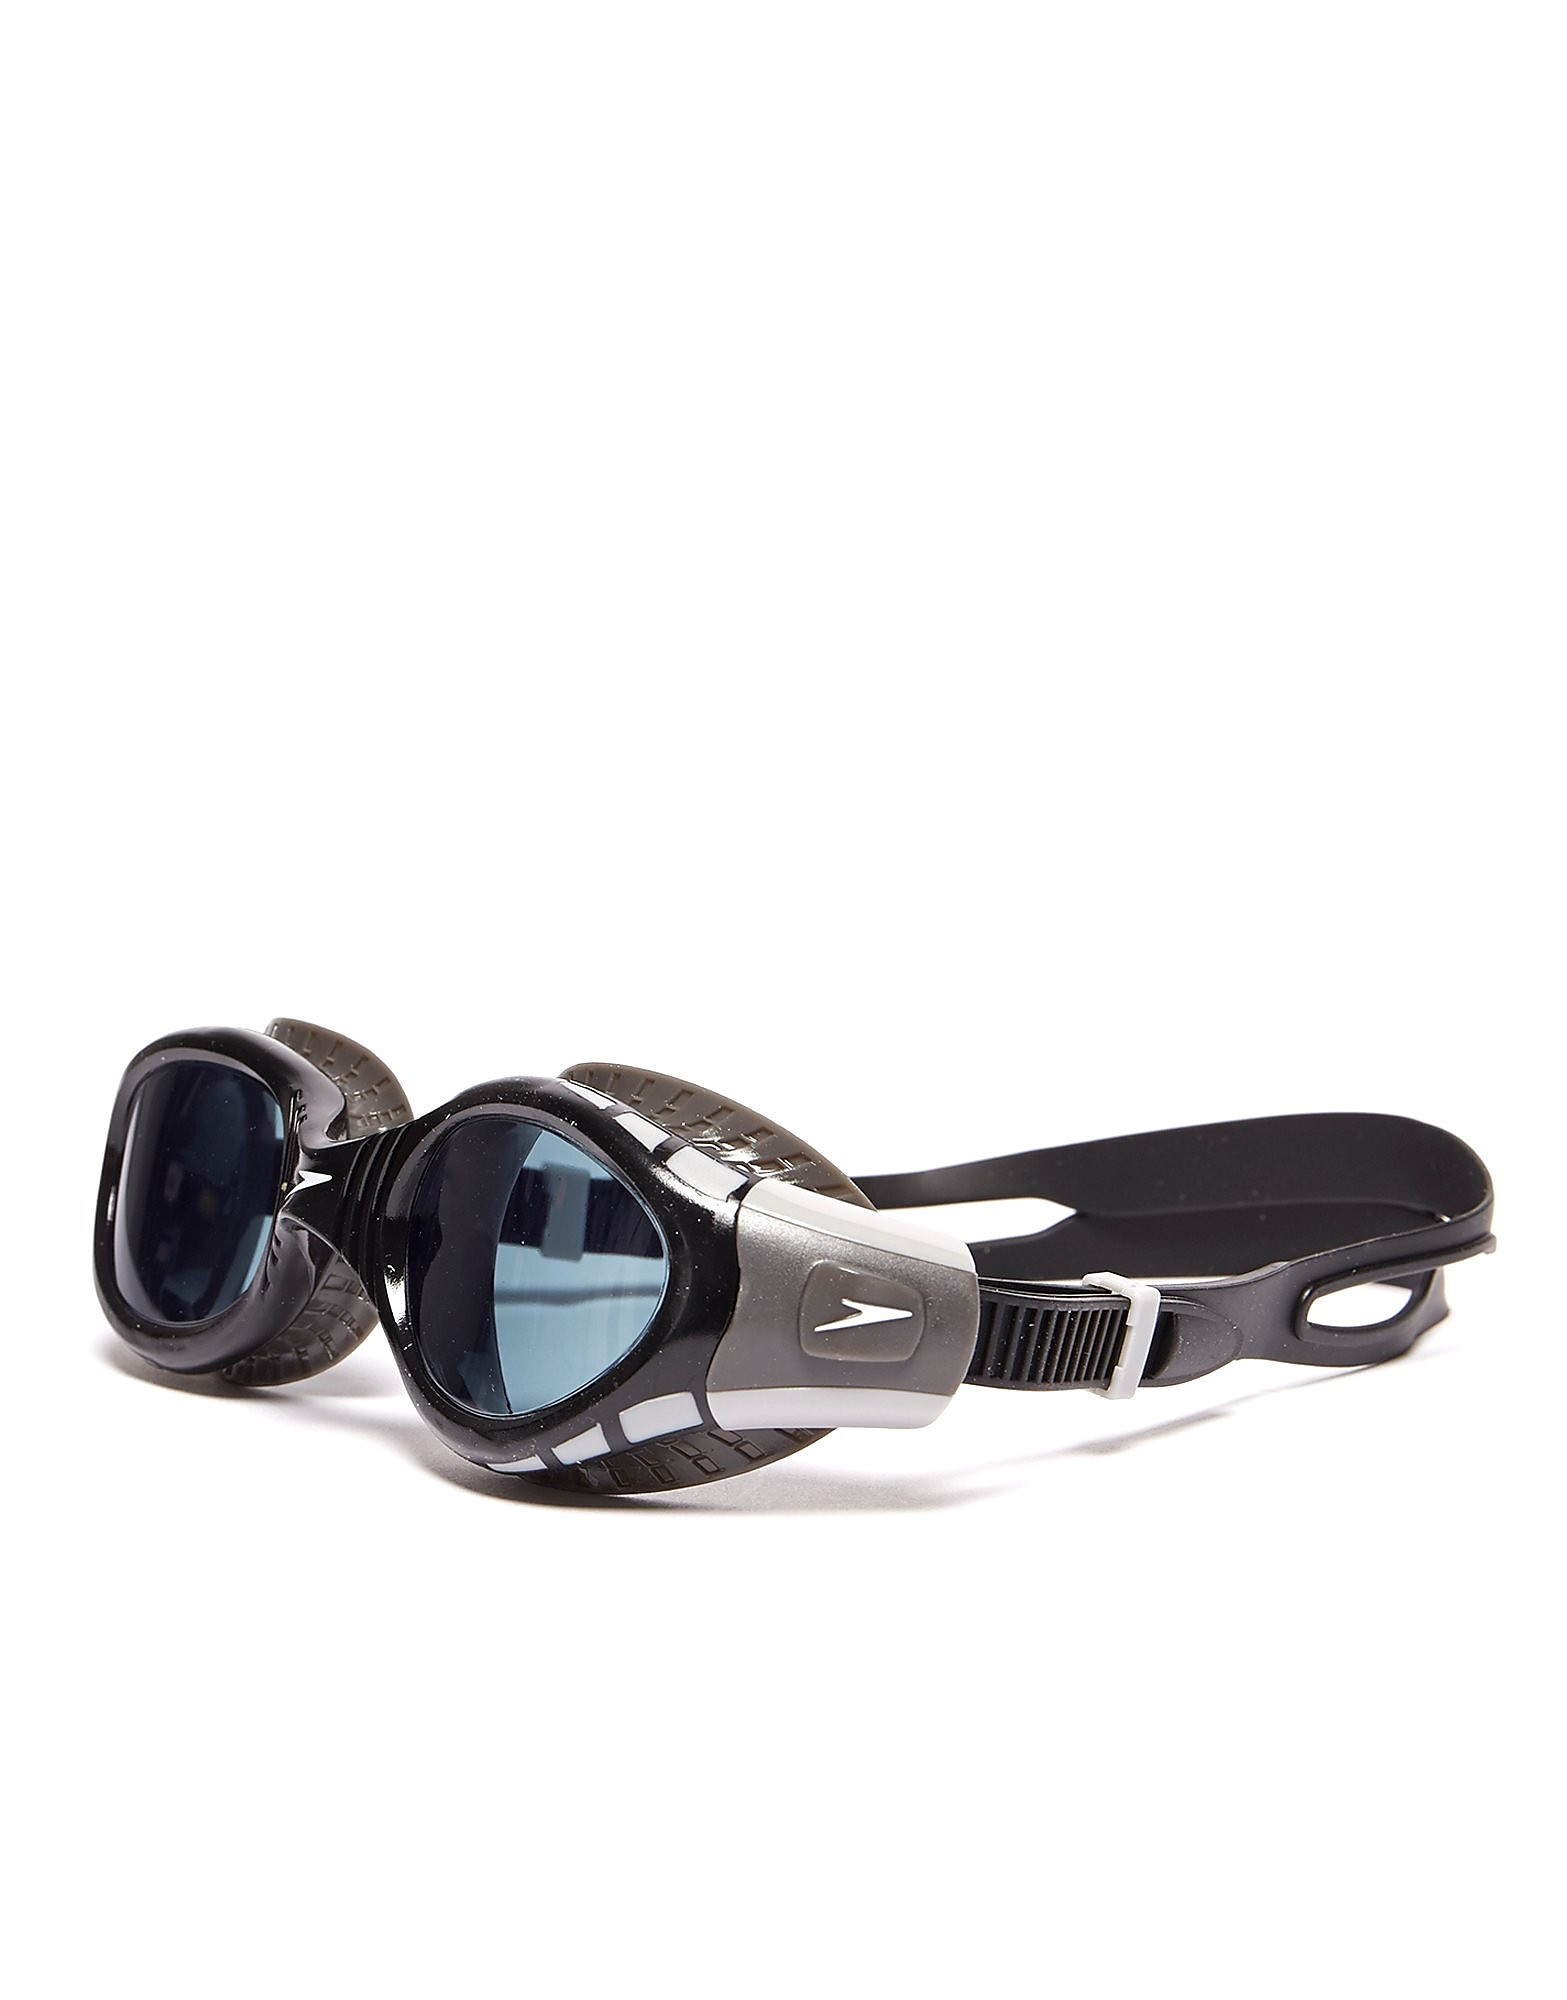 Speedo  Futura Biofuse Flexiseal Swimming Goggles